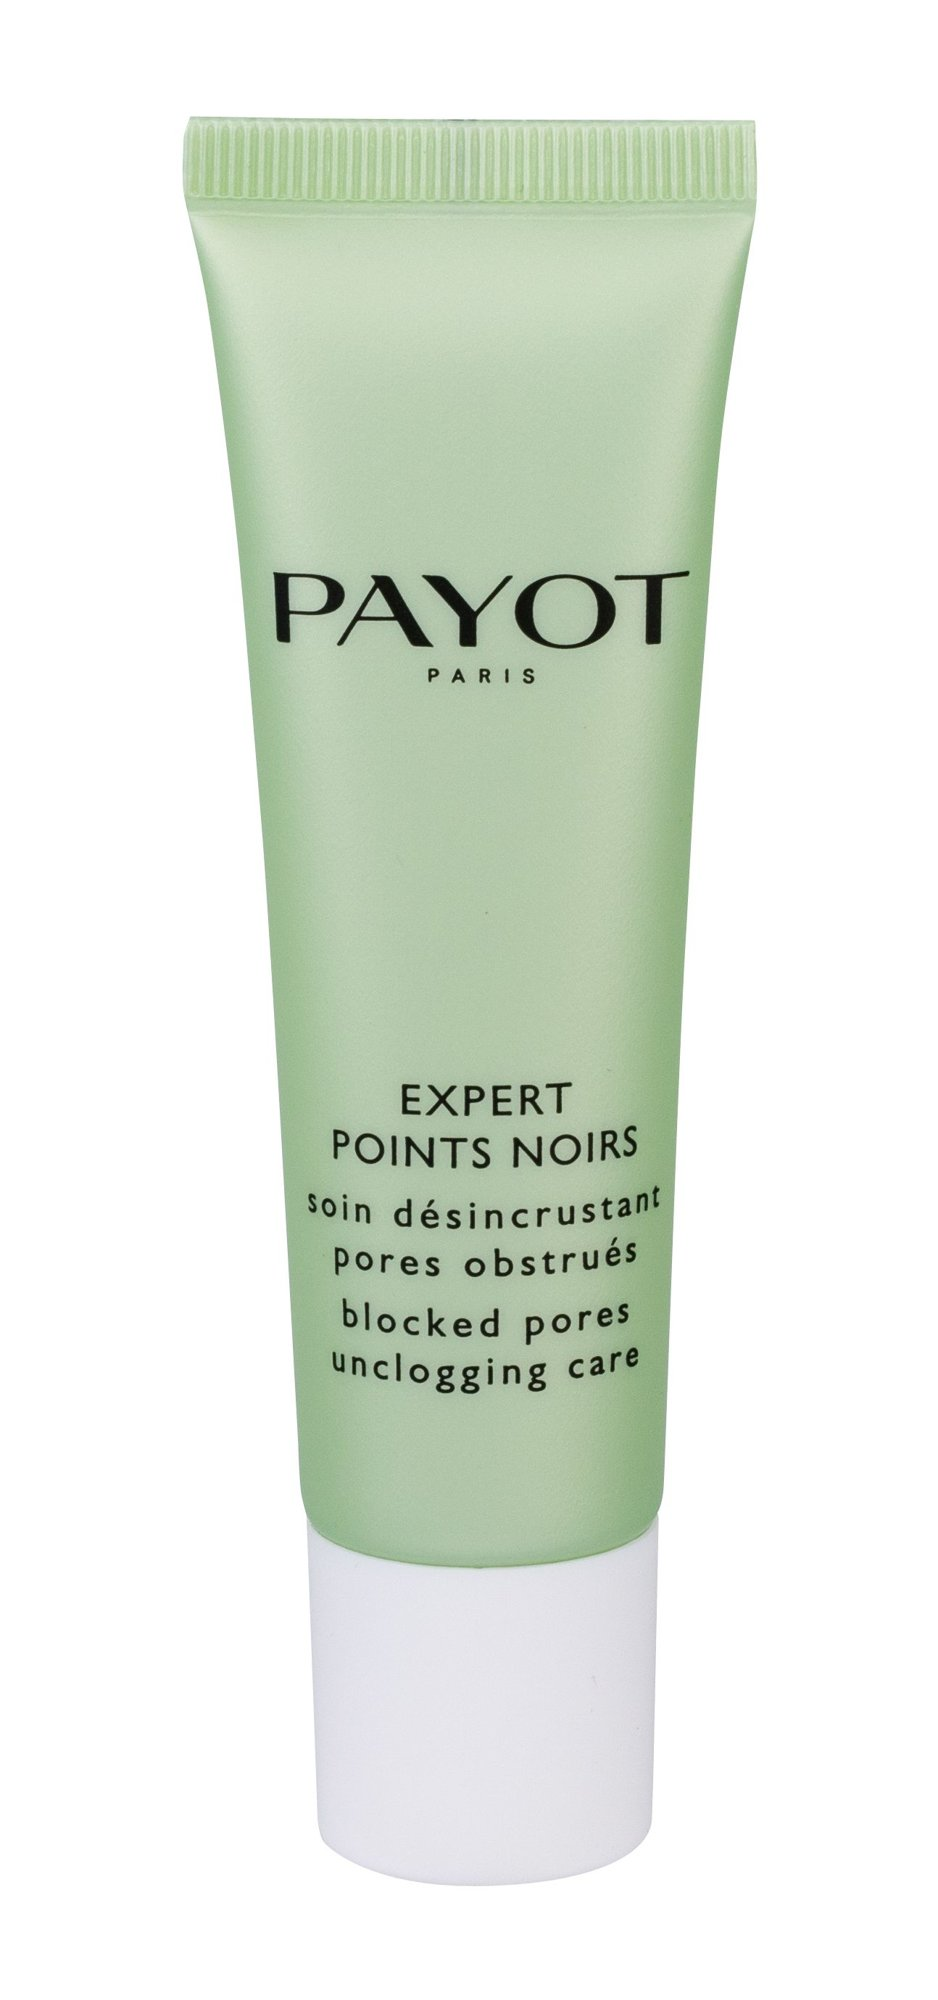 PAYOT Expert Points Noirs Cosmetic 30ml  Blocked Pores Unclogging Care